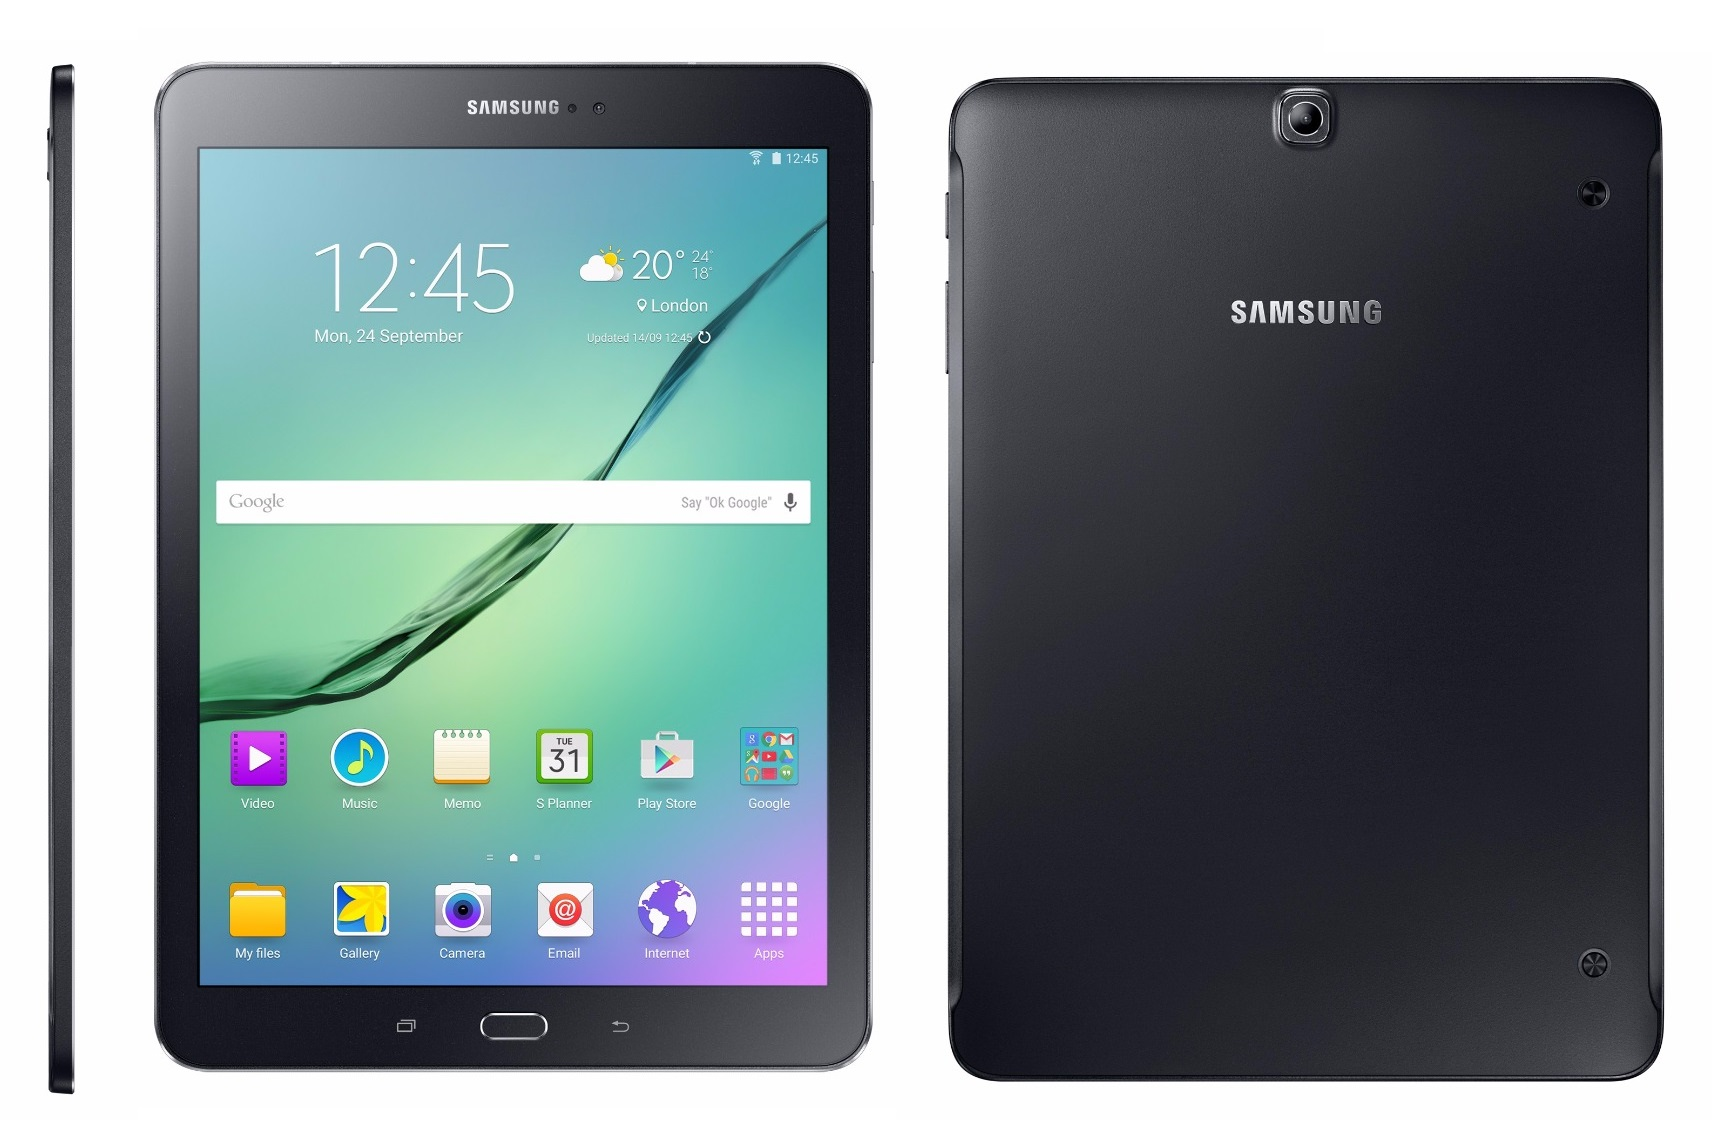 Samsung Galaxy Tab S2 Unveiled July 20 - Release Sept. 3